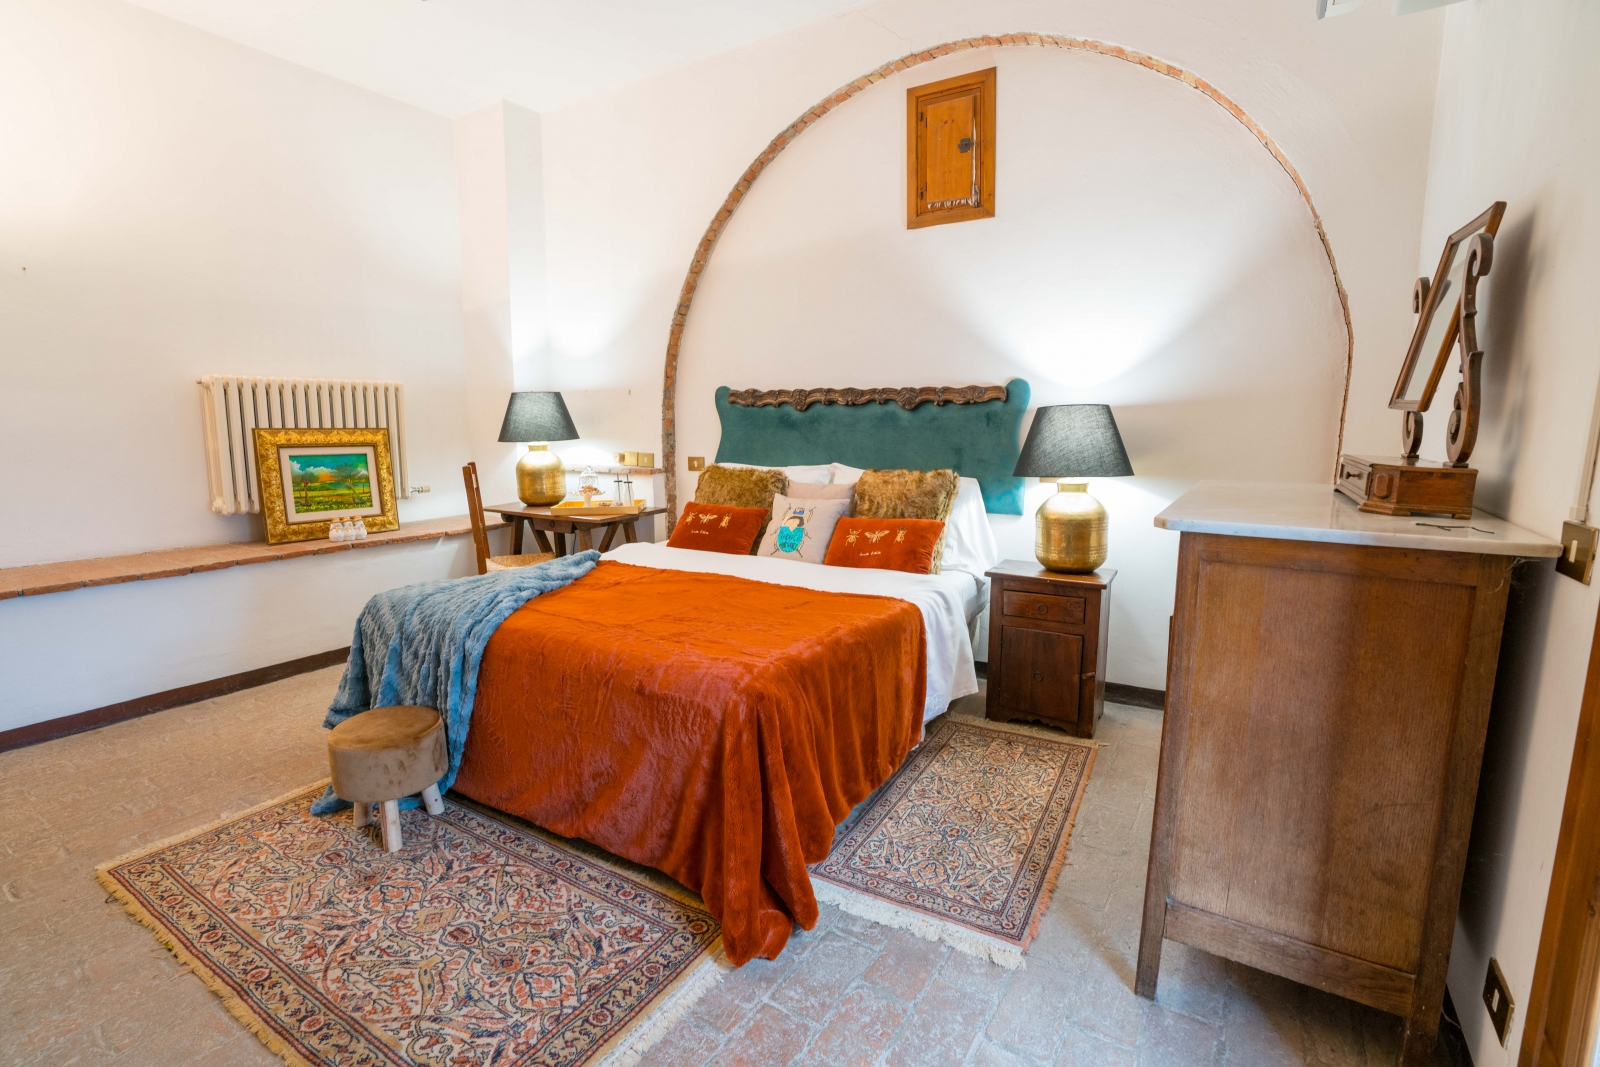 Tuscan Boutique Hotel with Michelin-Star Restaurant in Montefollonico, Italy